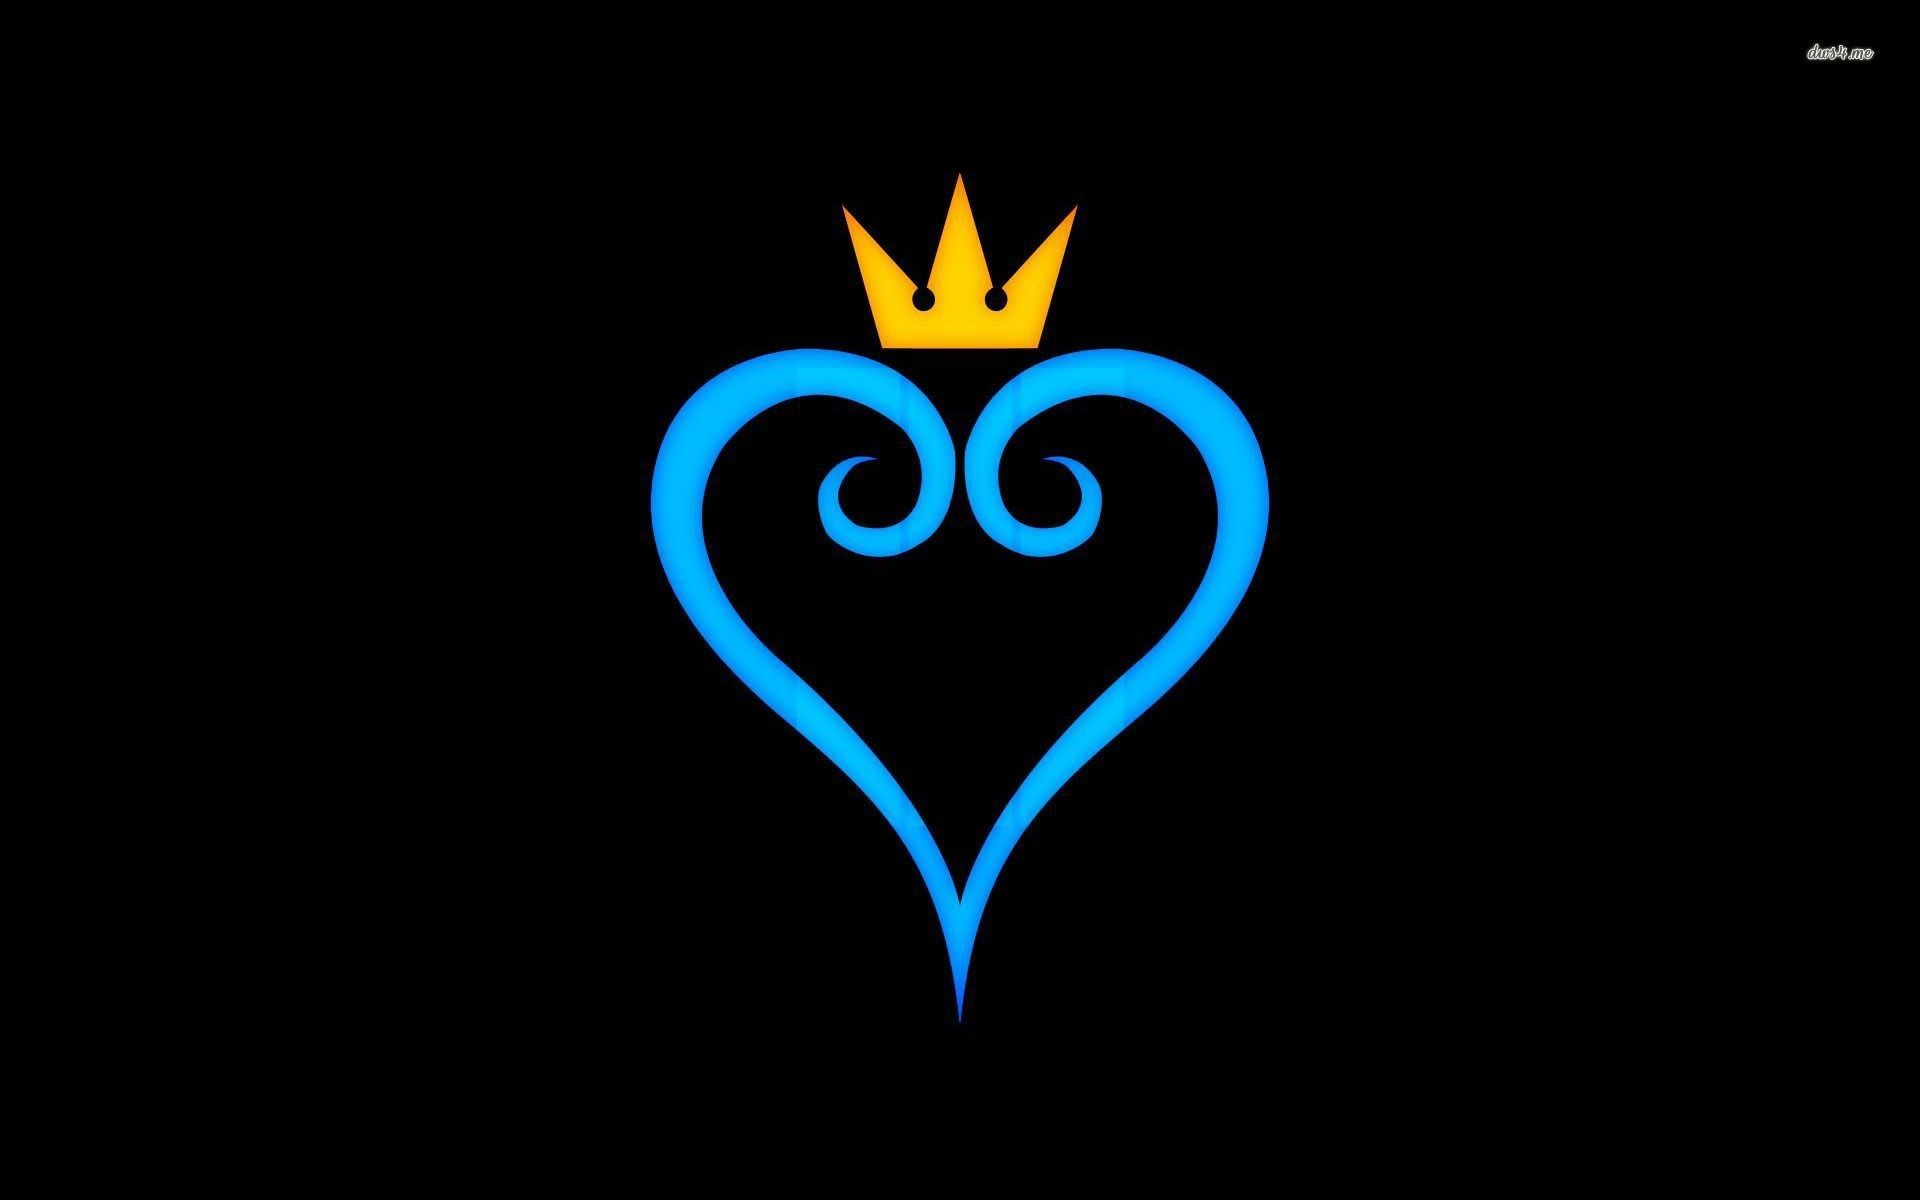 1920x1200 Kingdom Hearts Wallpaper 1080p In 2020 With Images Kingdom Hearts Wallpaper Kingdom Hearts Logo Kingdom Hearts Tattoo